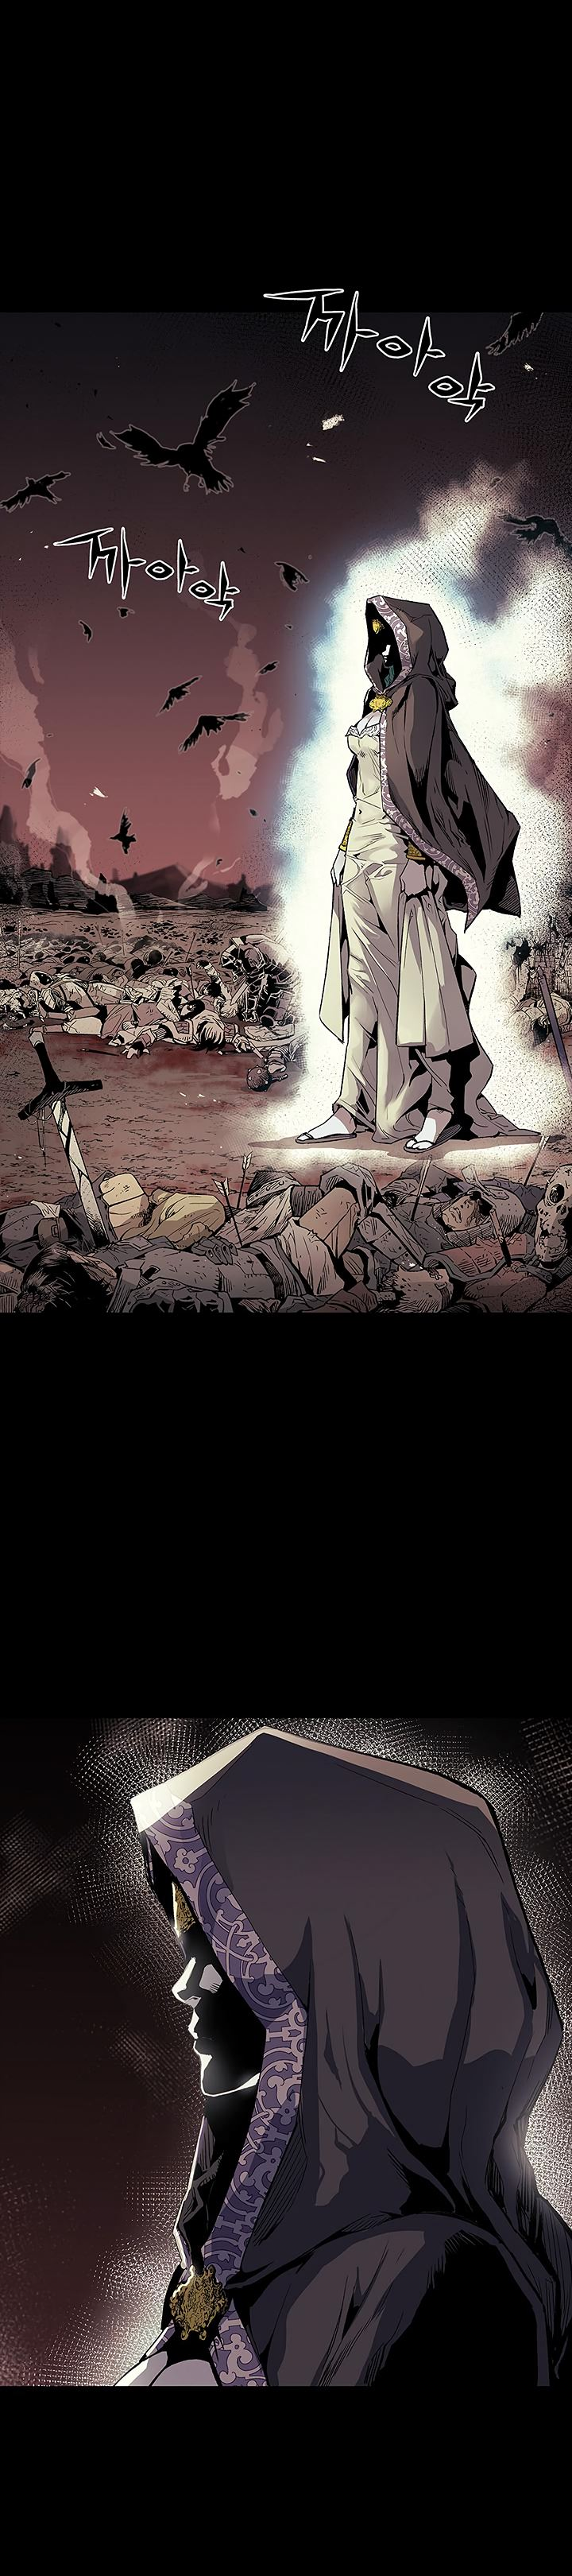 Spoiler Manhwa The Second Coming of Gluttony 4